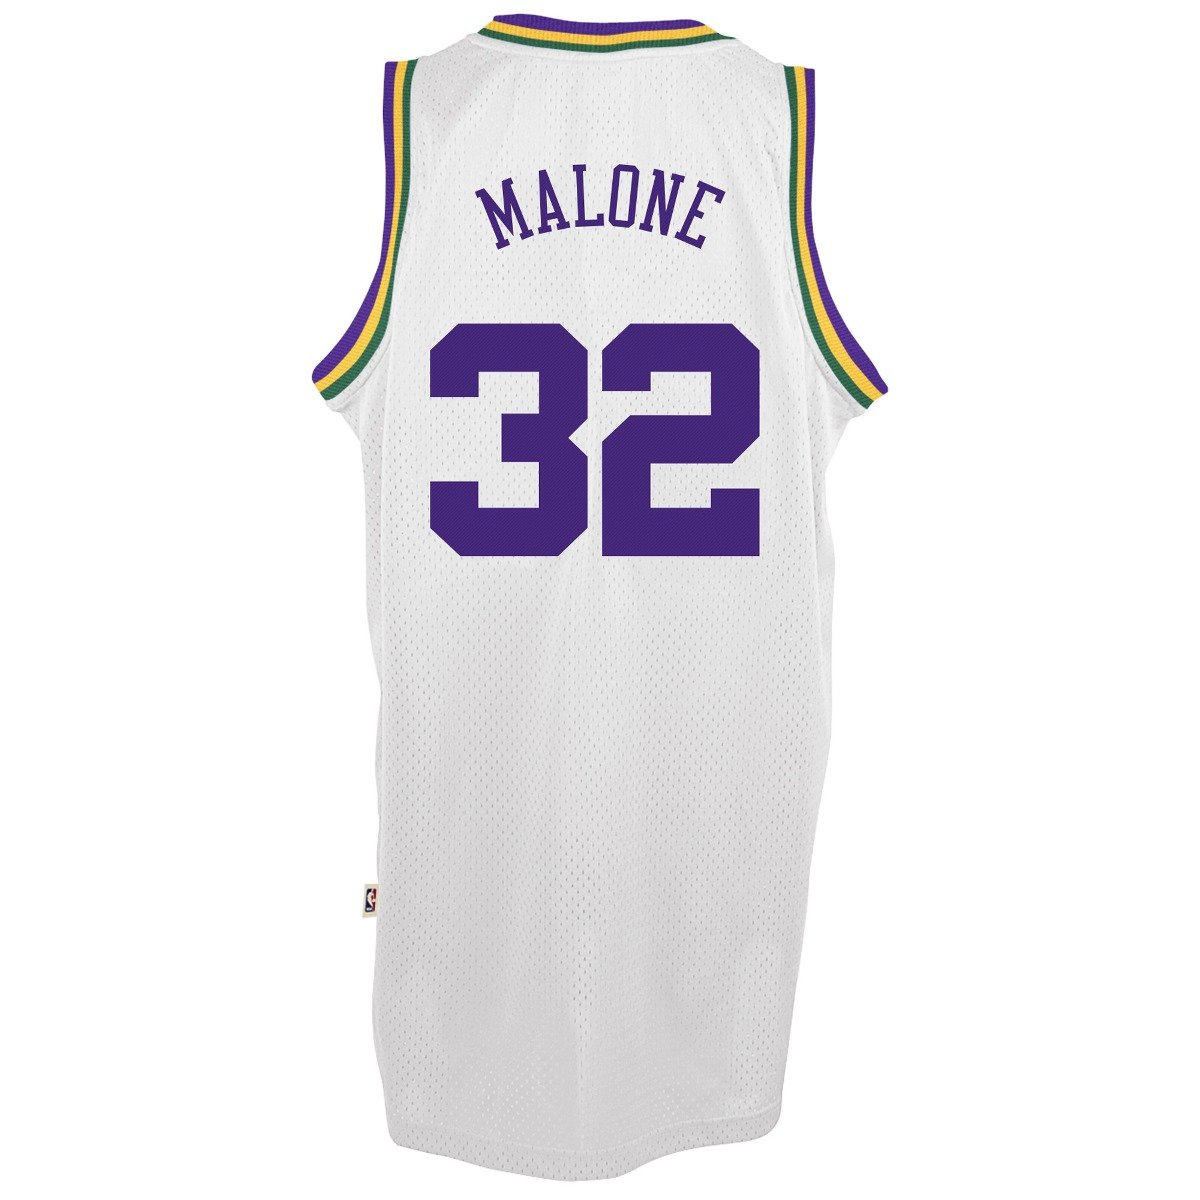 ... Sports Collectibles Store Karl Malone Utah Jazz Adidas NBA Throwback  Swingman Jersey - White Amazon.co.uk ... b44af90c5